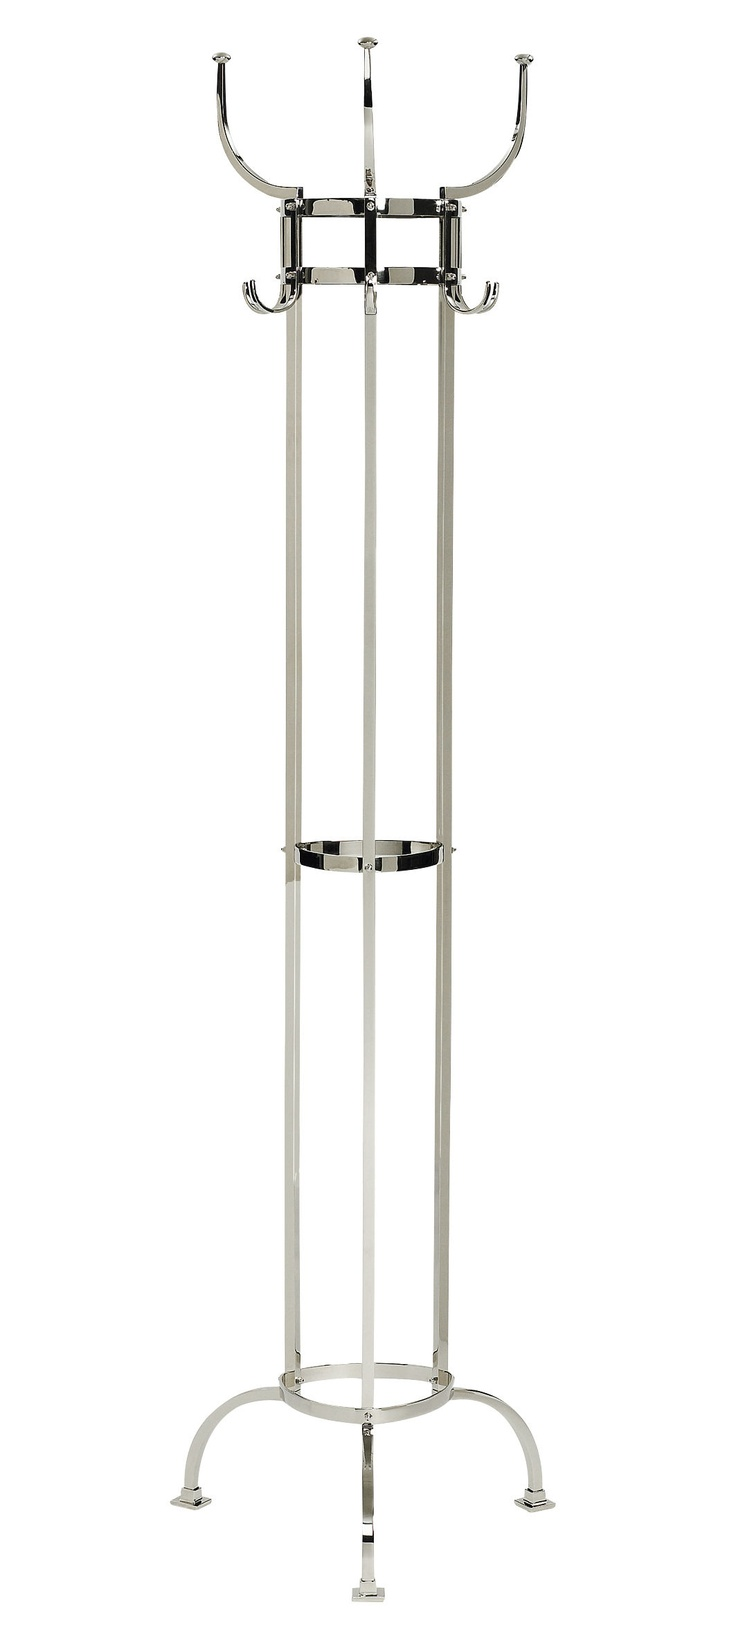 Germany. Nymphenburg Coat Stand, 1908 // designed By Munich-based Otto Blumel, is a classic example of Jugendstil, avoiding the fussy excess of some Art Nouveau decoration. (From The Design Book)